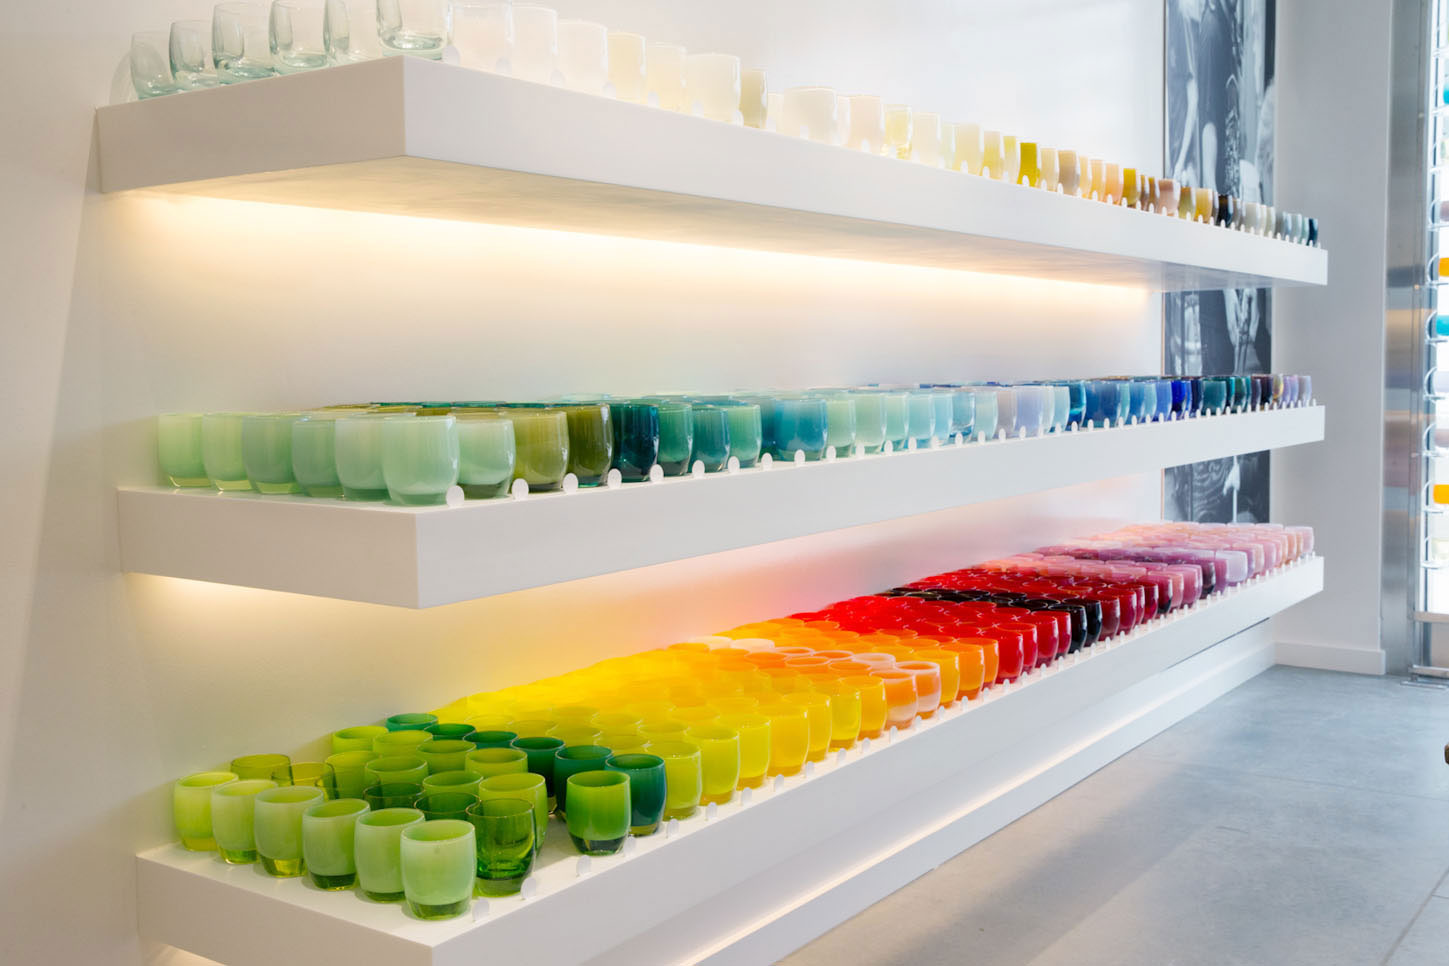 Votives on display at Glassybaby